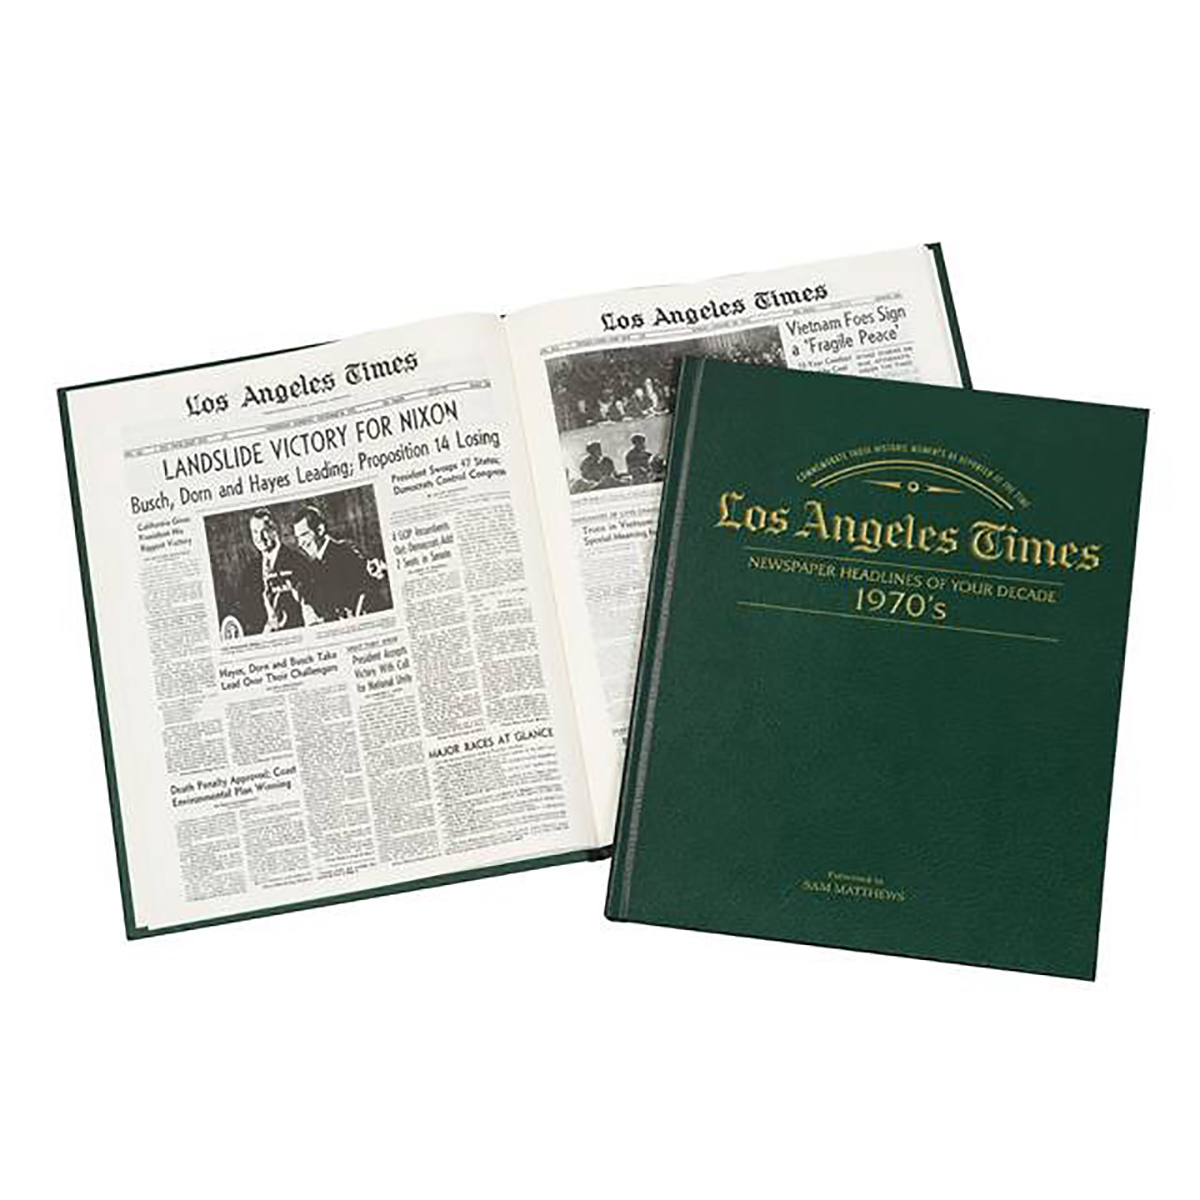 Los Angeles Times: Los Angeles Times 70's Decade Book